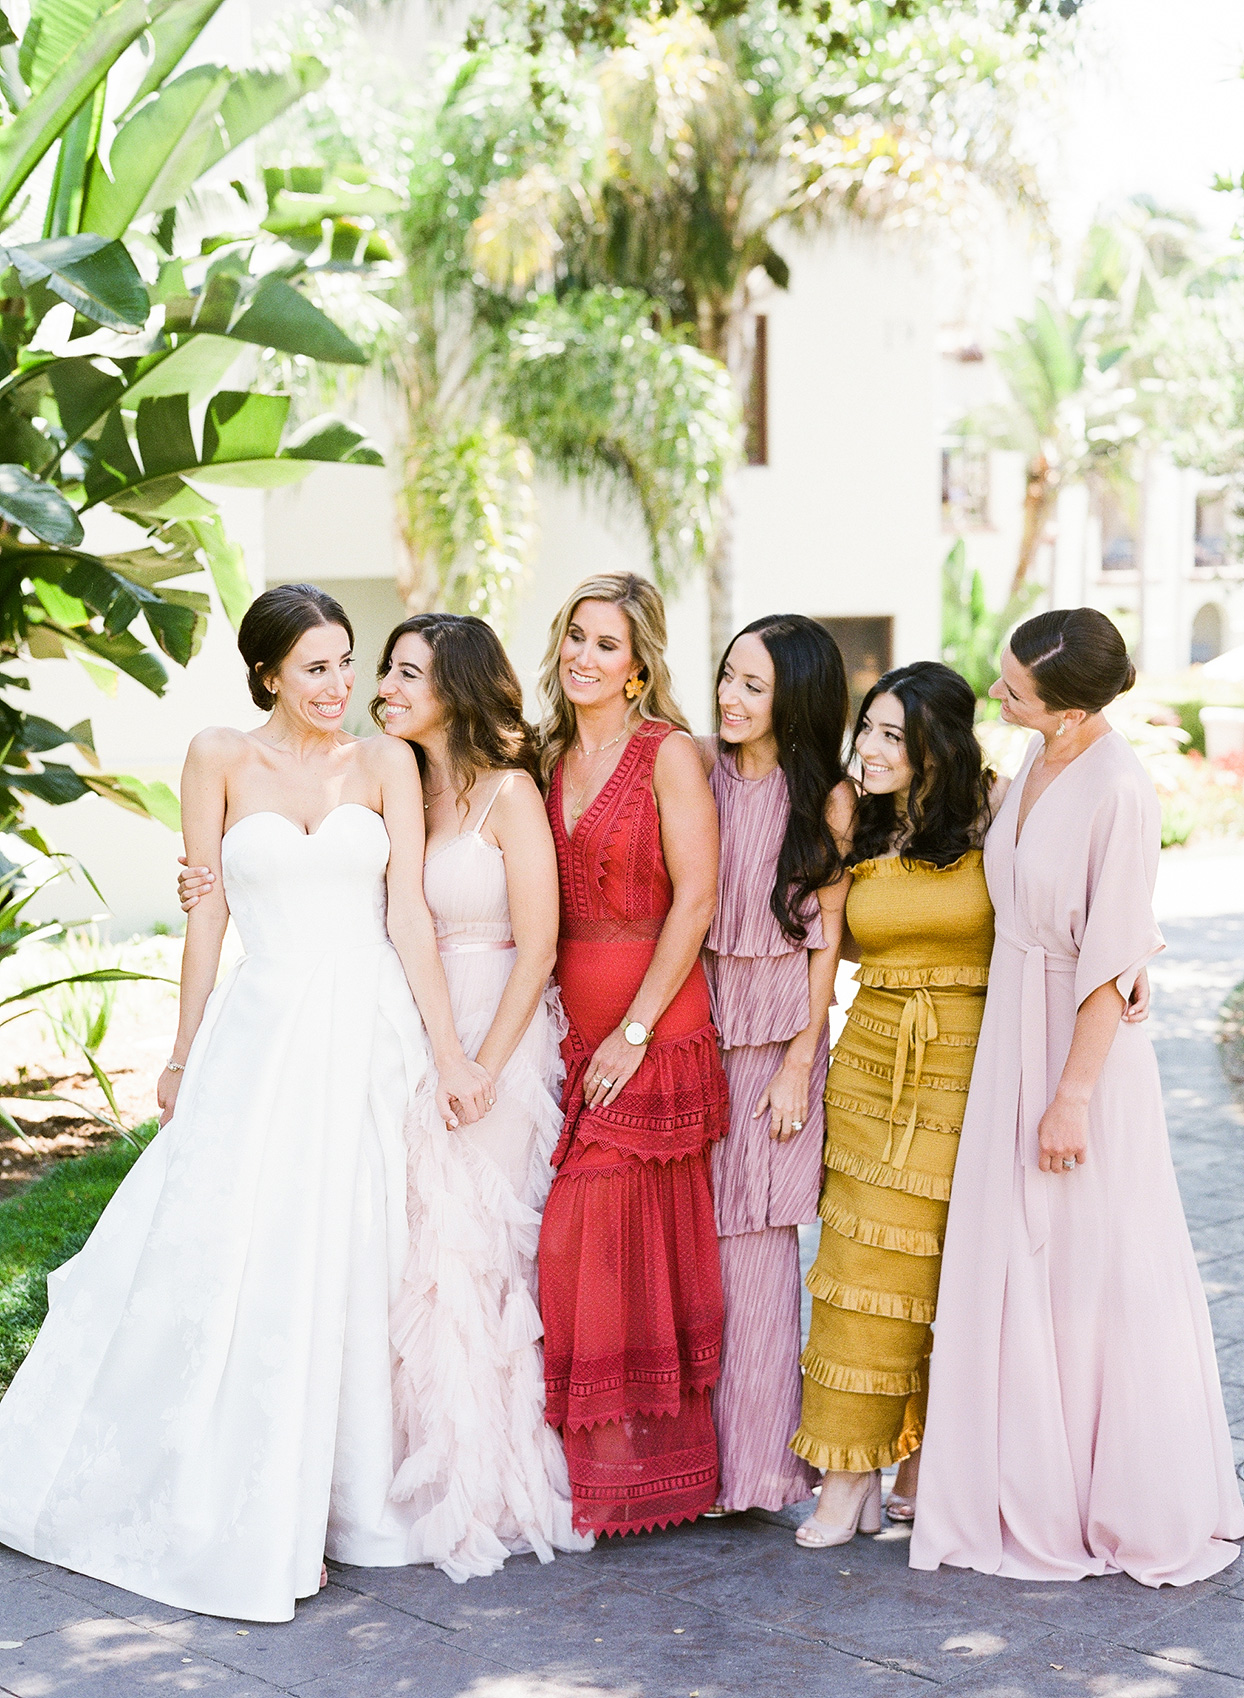 bride with maids in assortment of colored ruffled dresses